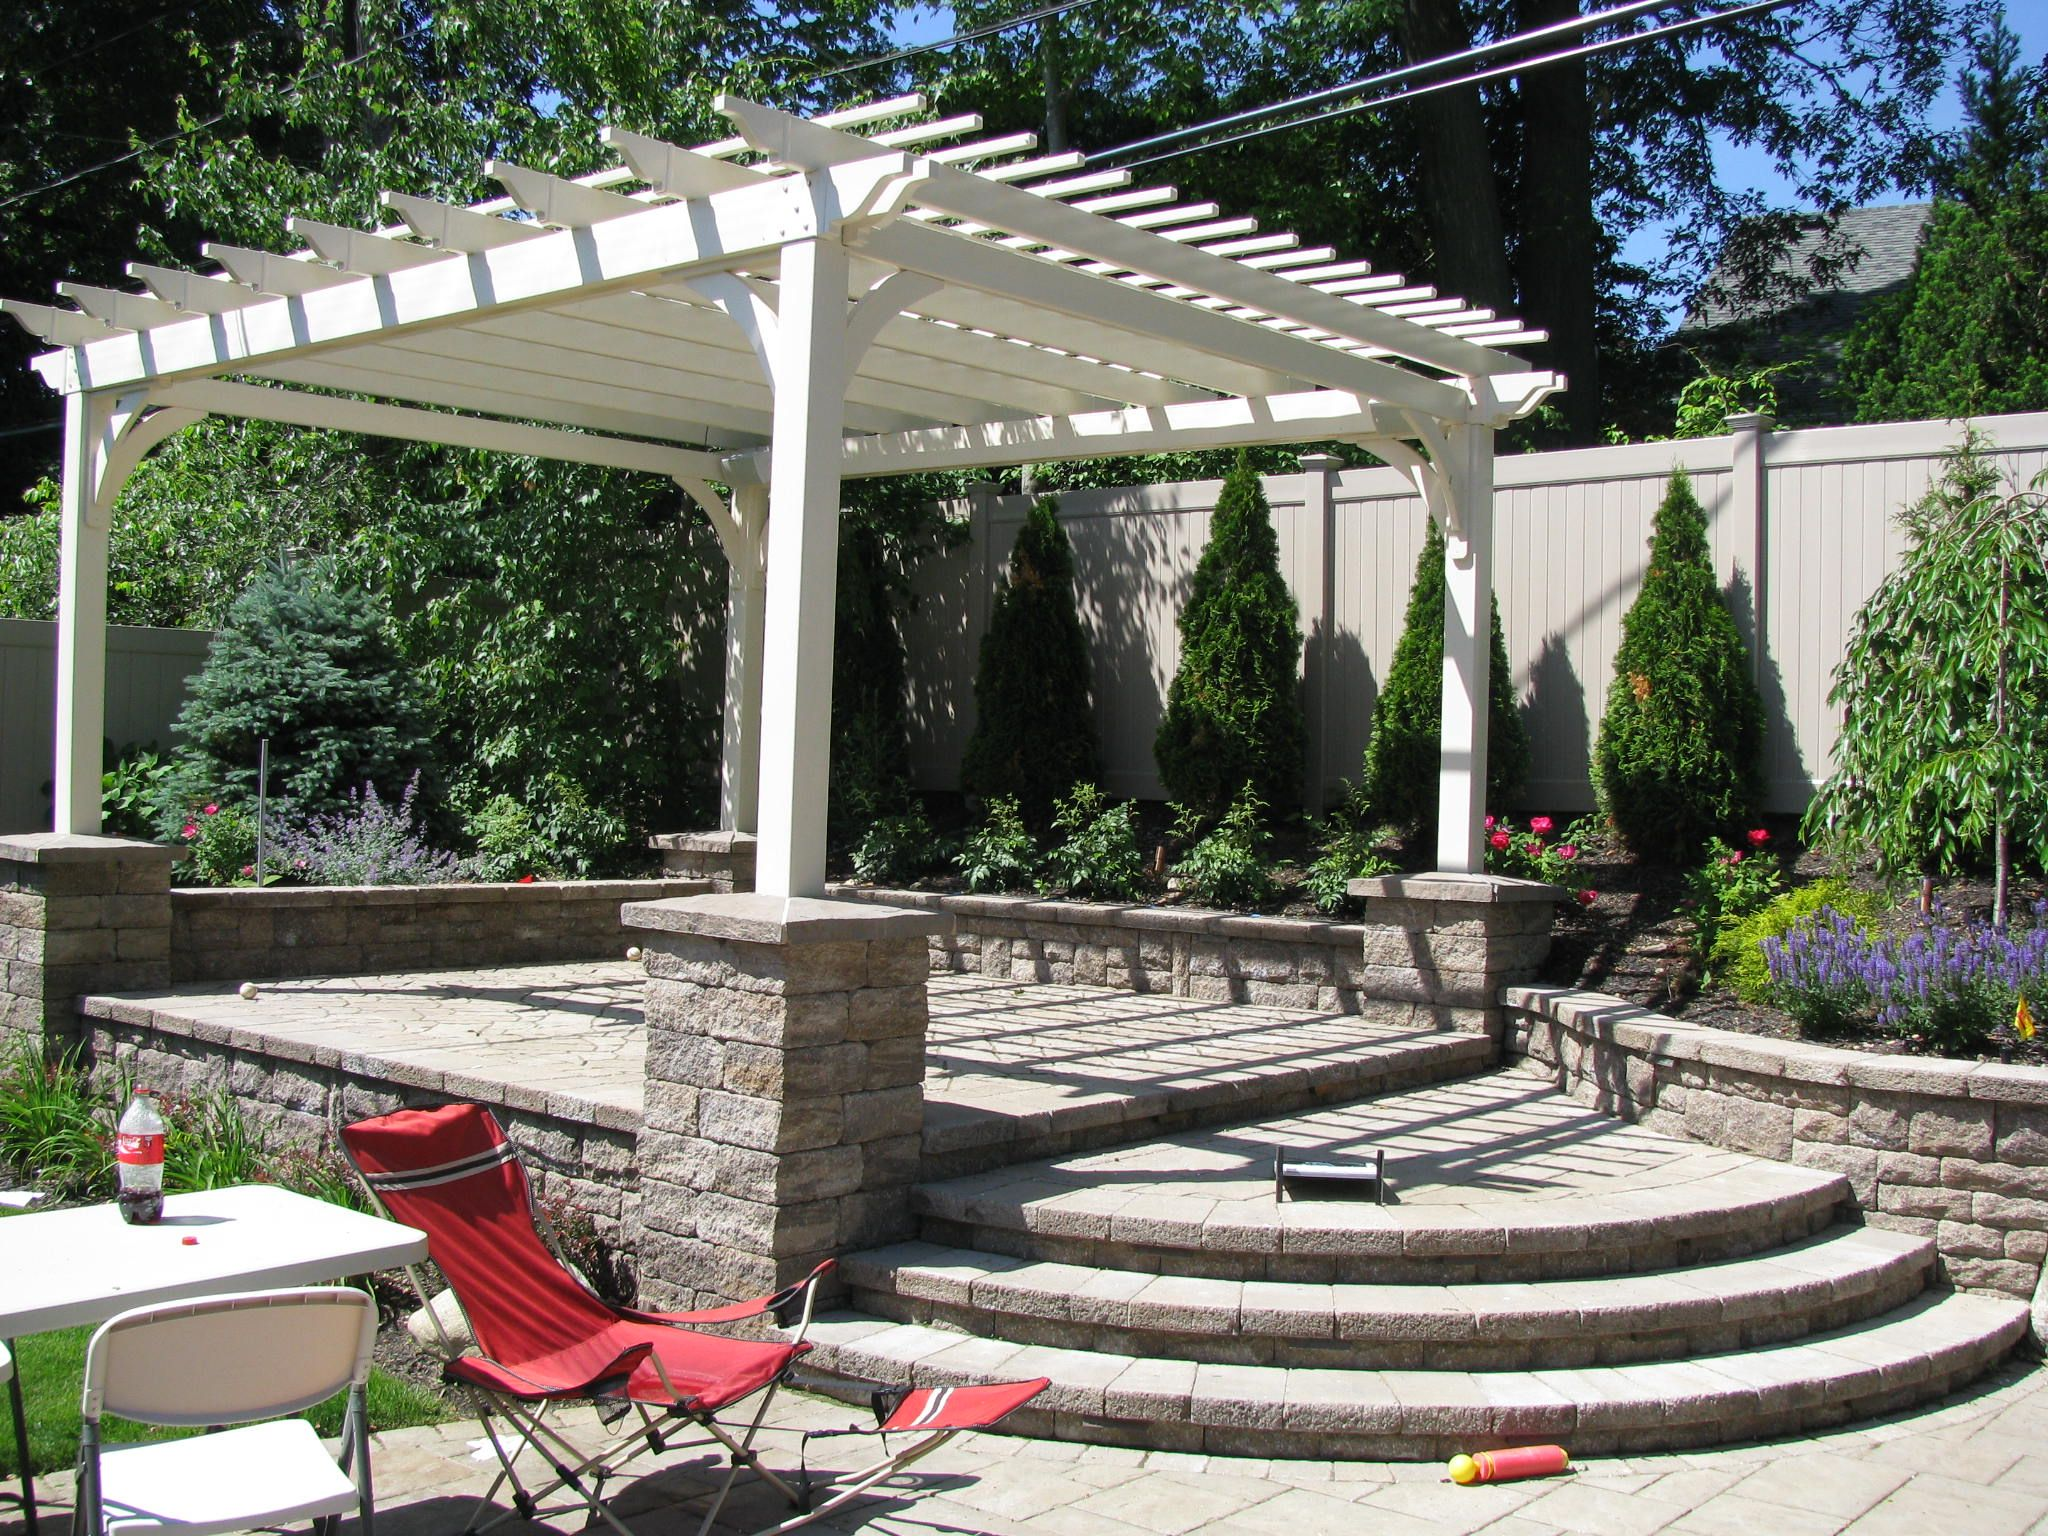 Building outdoor living spaces effectively extends your home living spaces. Metamorphosis Landscape Design takes outdoor spaces and constructs, develops, and enhances them, effectively extending your livable space and increasing the value of your home.